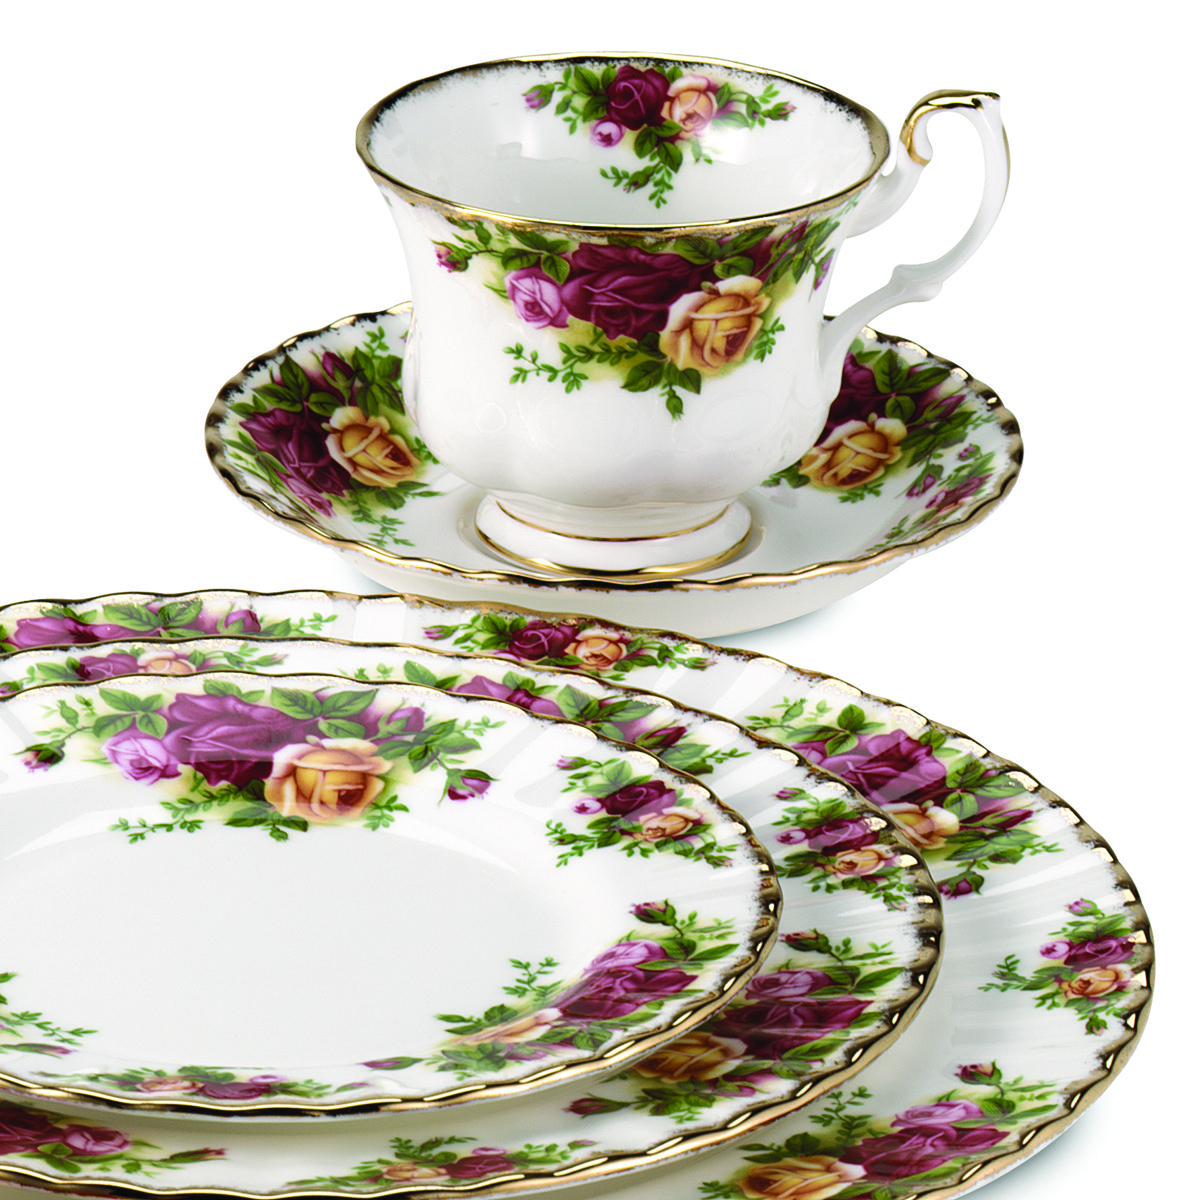 Legendary: the classic Royal Albert rose pattern. #Dishes #China.